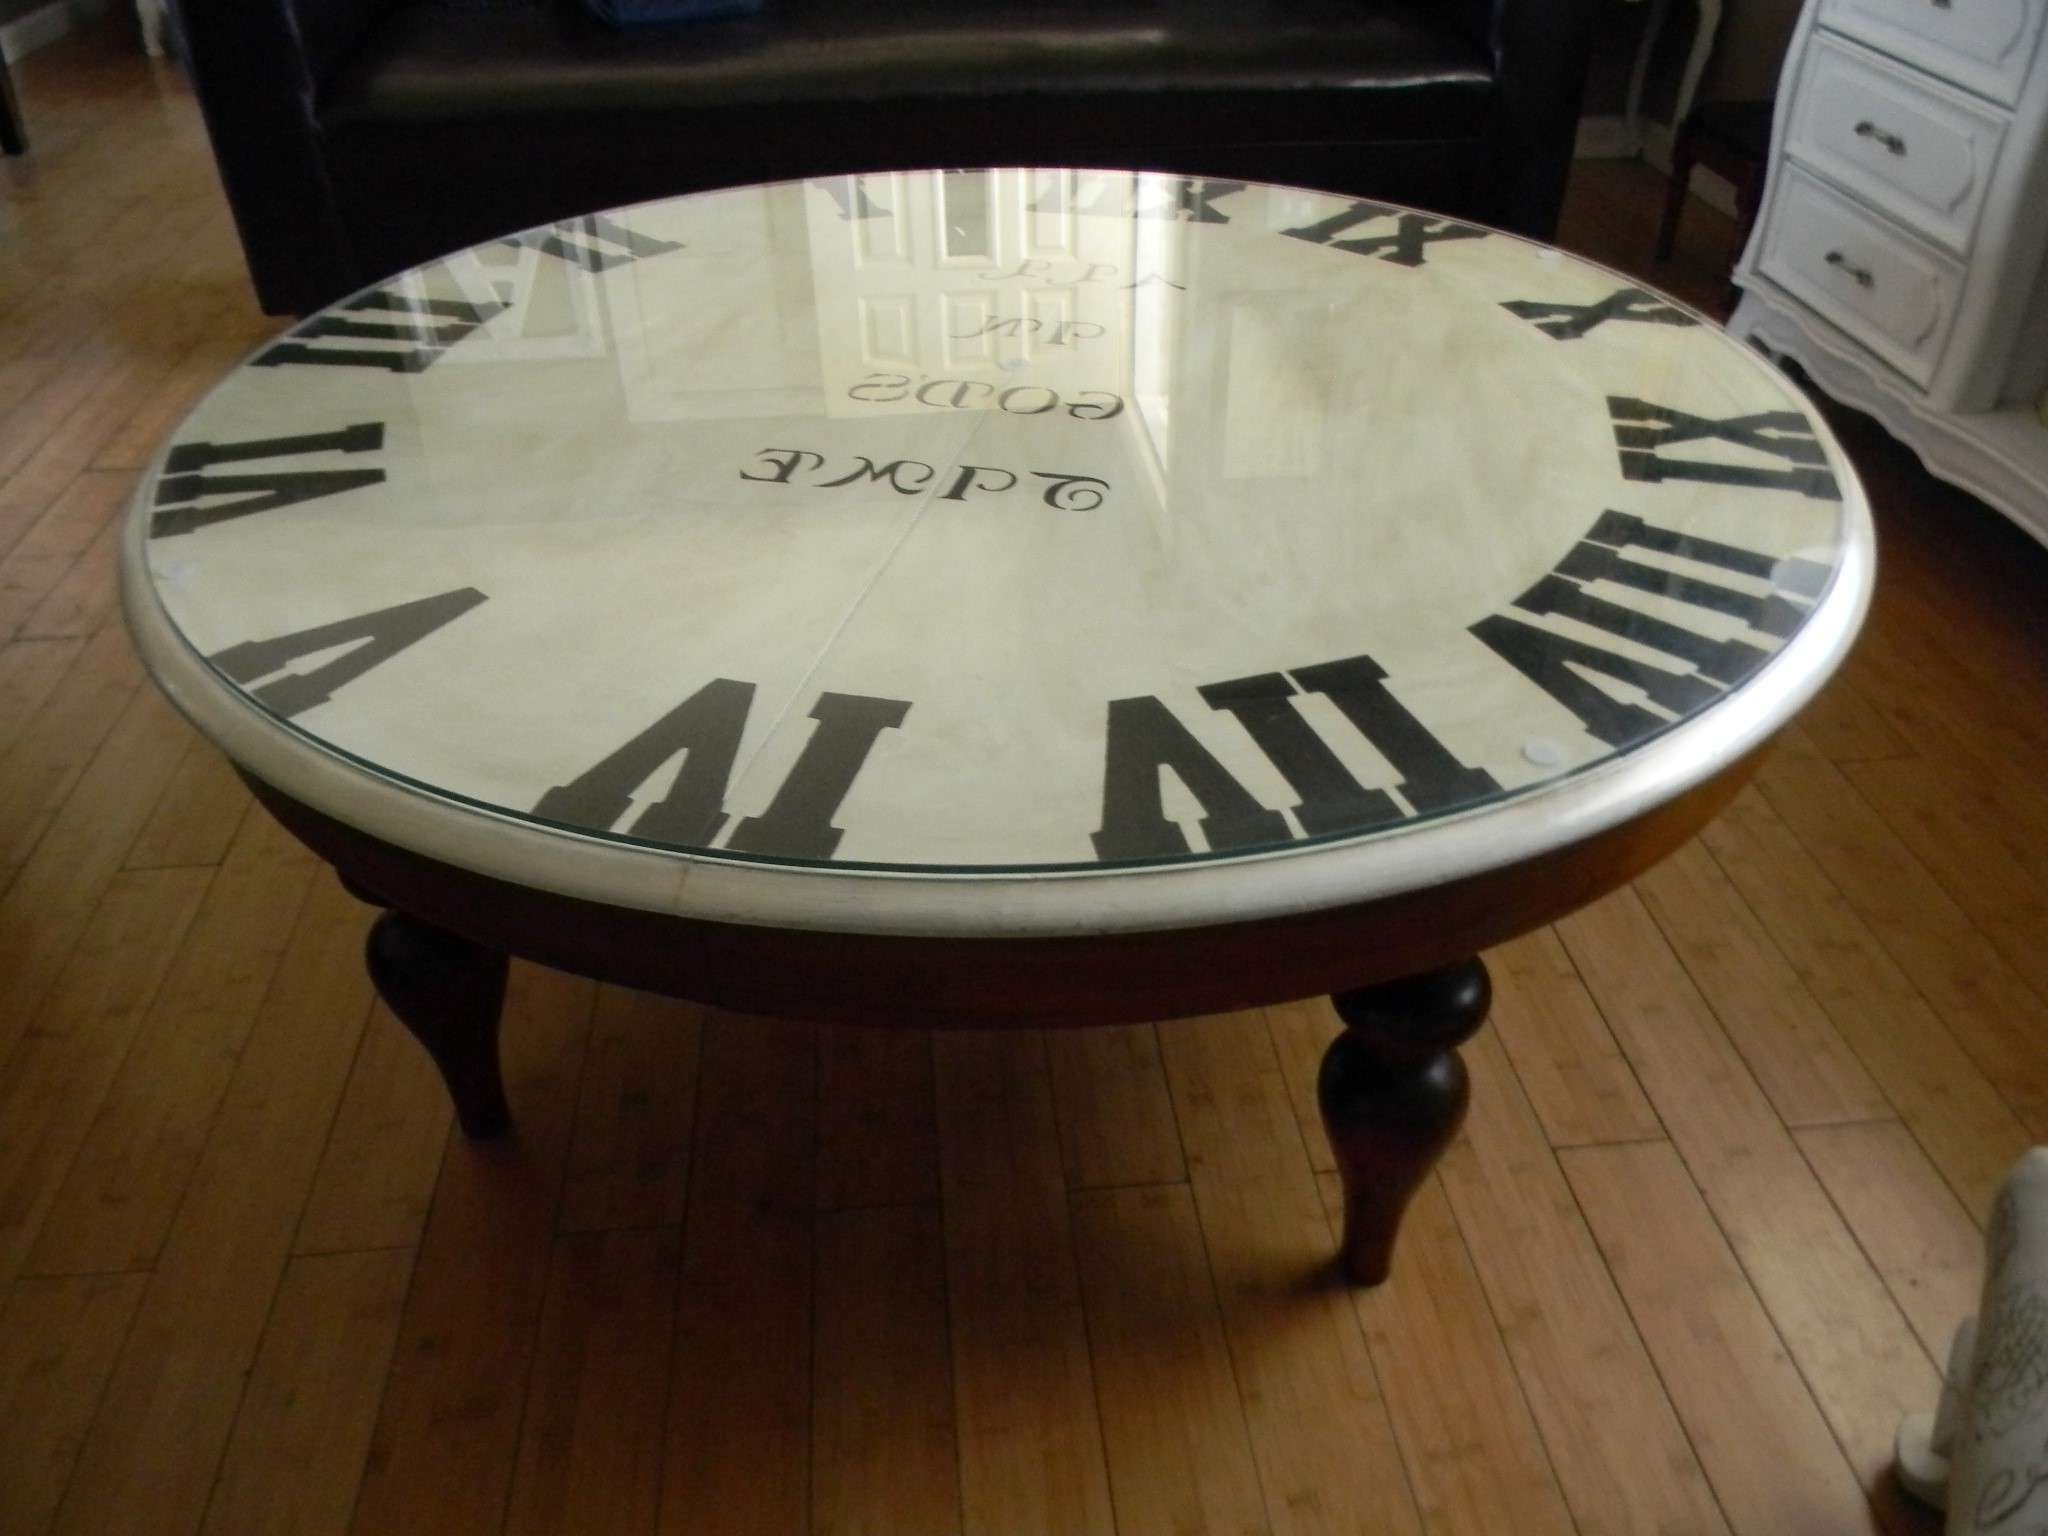 Brown And White Round Vintage Glass Top Clock Coffee Table Designs Intended For Popular Coffee Tables With Clock Top (View 3 of 20)